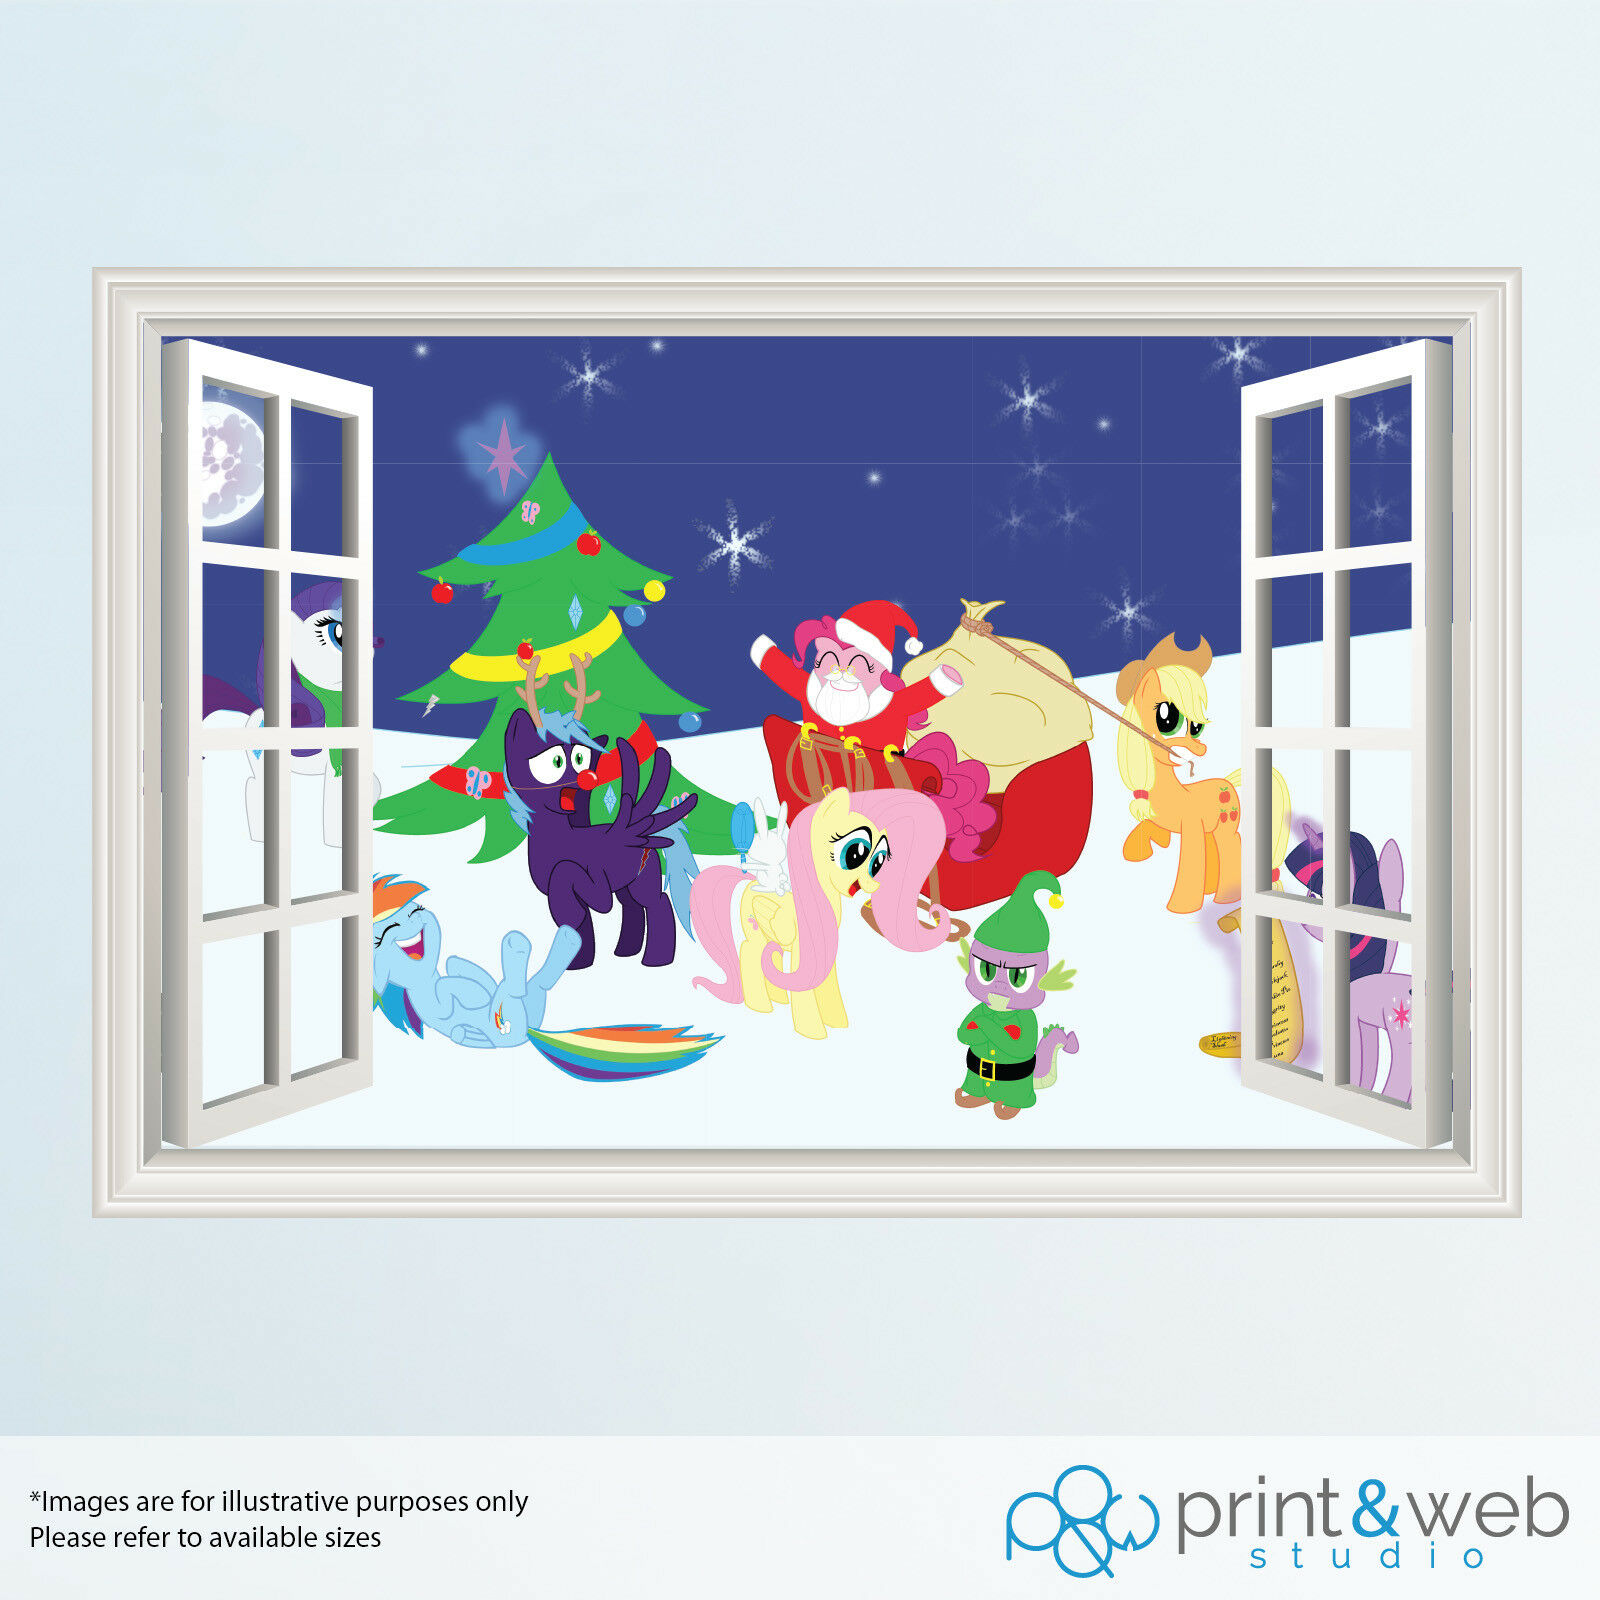 My Little Pony Christmas.Details About My Little Pony Christmas Window View Decal Wall Sticker Decor Home Art Mural